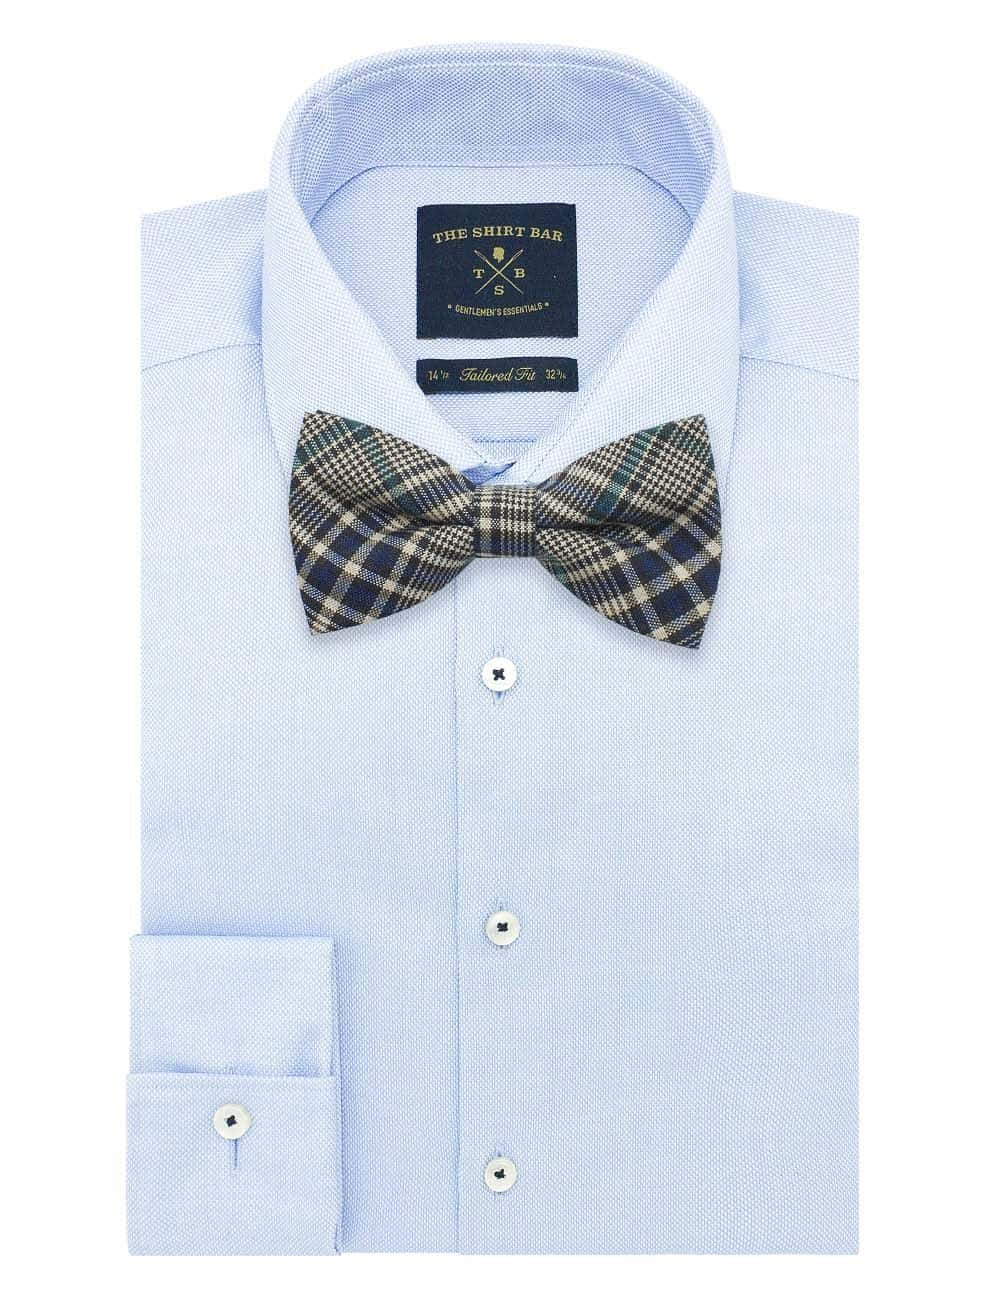 Black and Green Checks Woven Bowtie WBT49.8